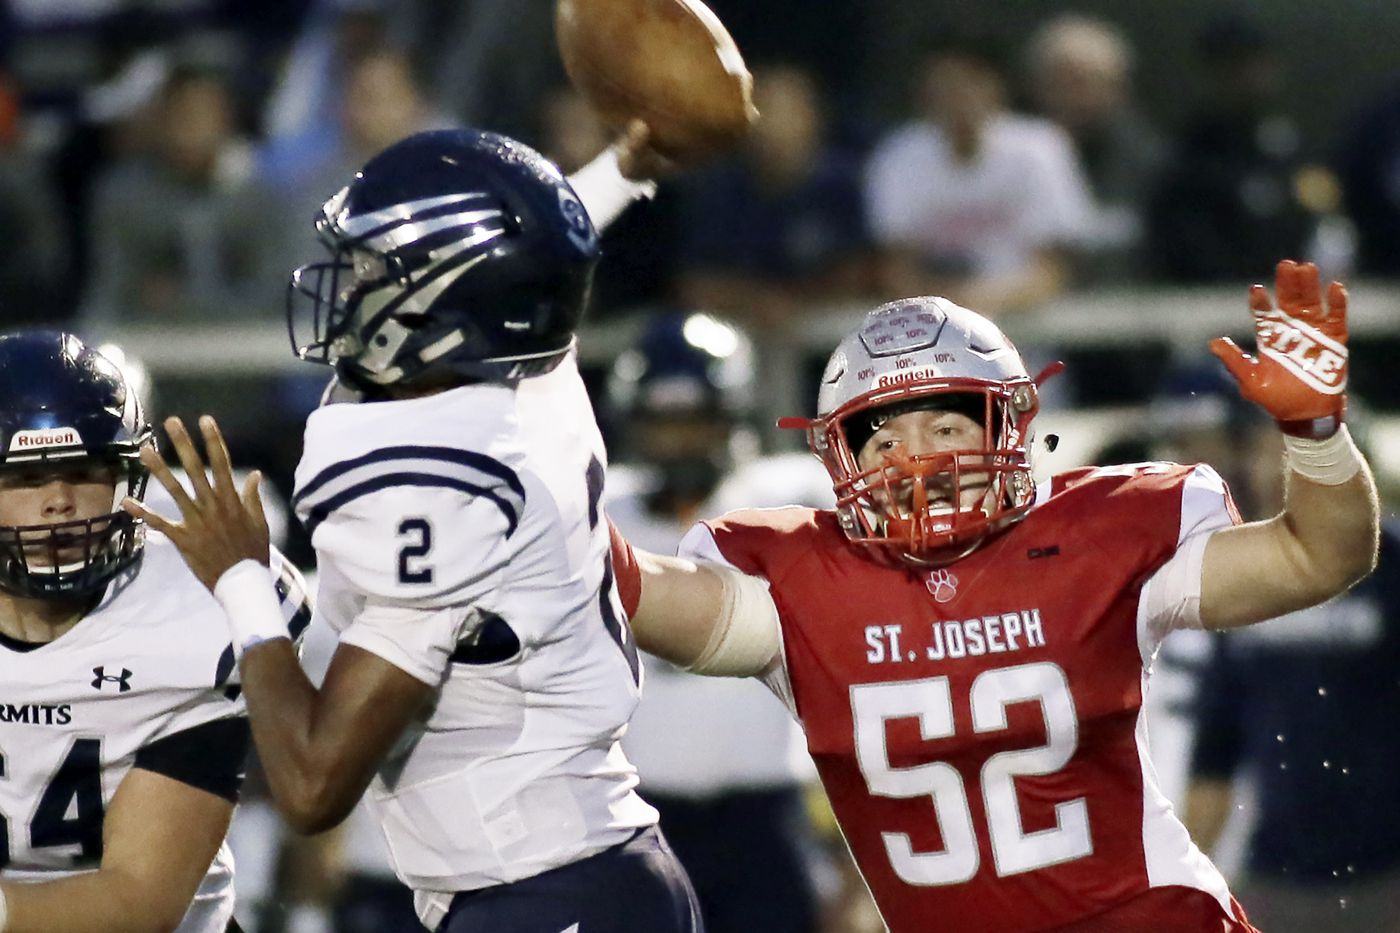 Holy Spirit at St. Augustine among top games to watch this weekend